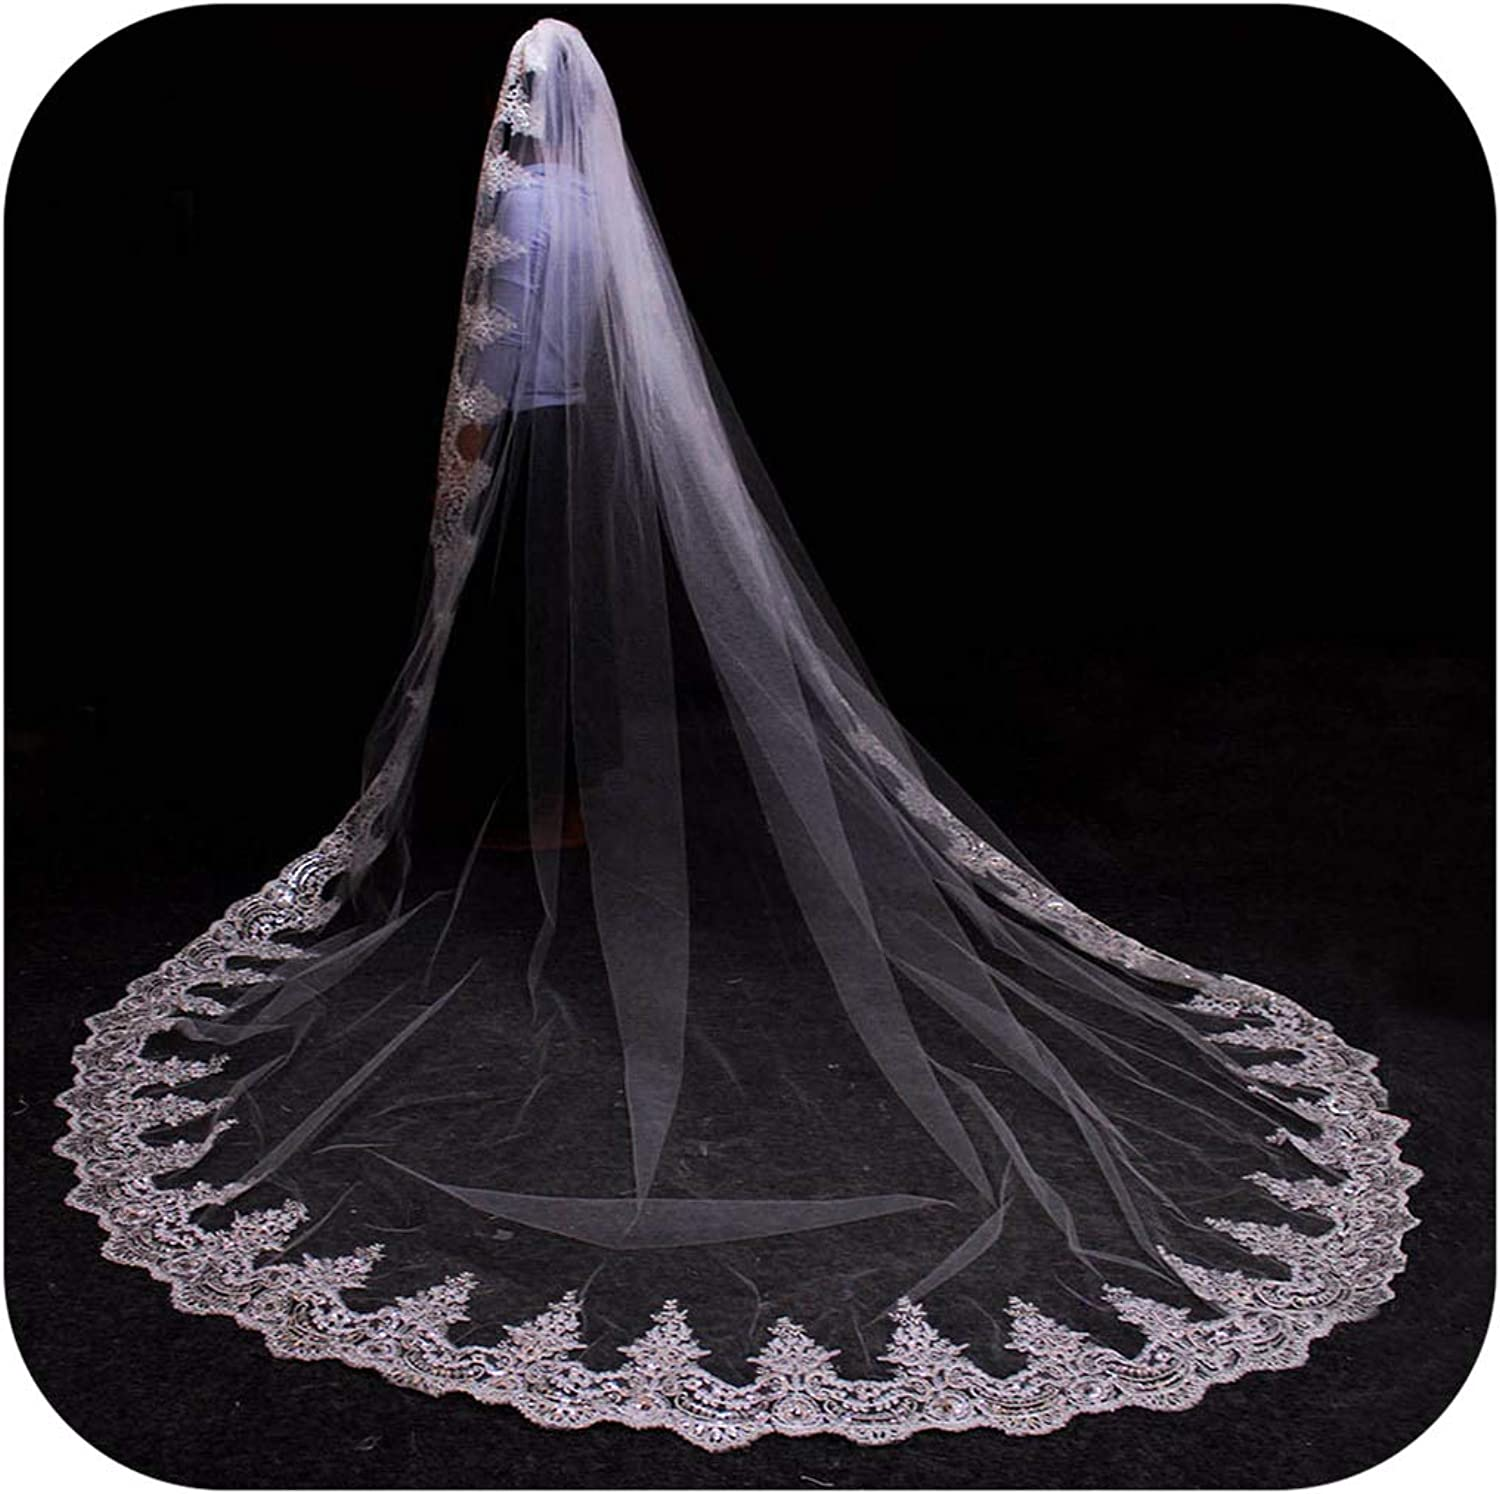 3 Meters White Ivory Cathedral Mantilla Wedding Veils Long Lace Edge Bridal Veil With Comb Wedding Accessories Bride,White,300Cm